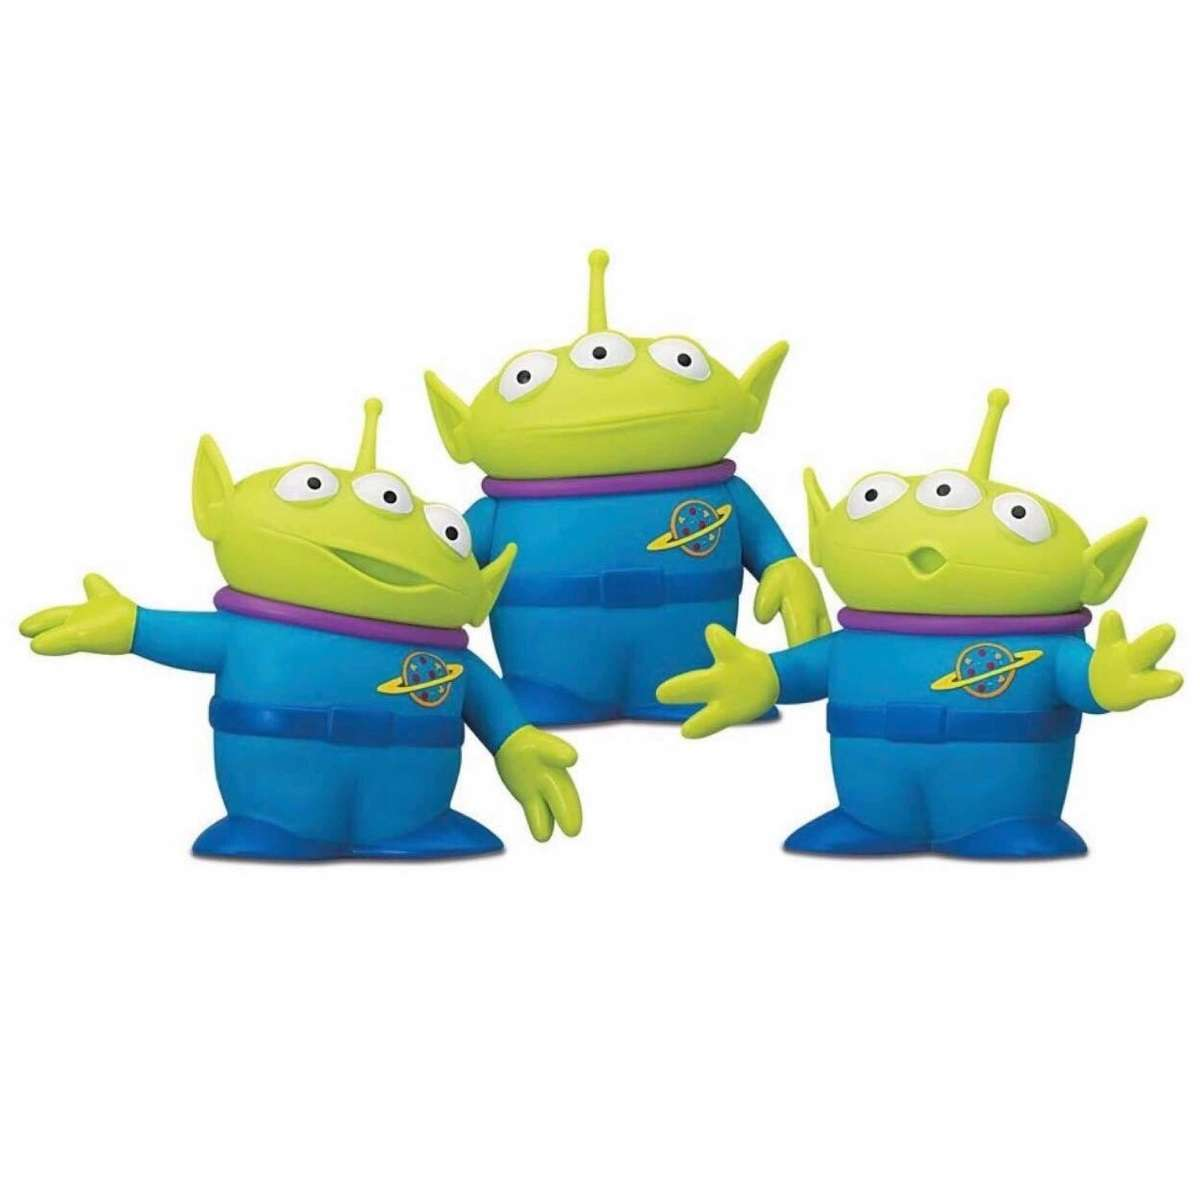 Signature Collection: Toy Story - Space Aliens 3-Pack Photo